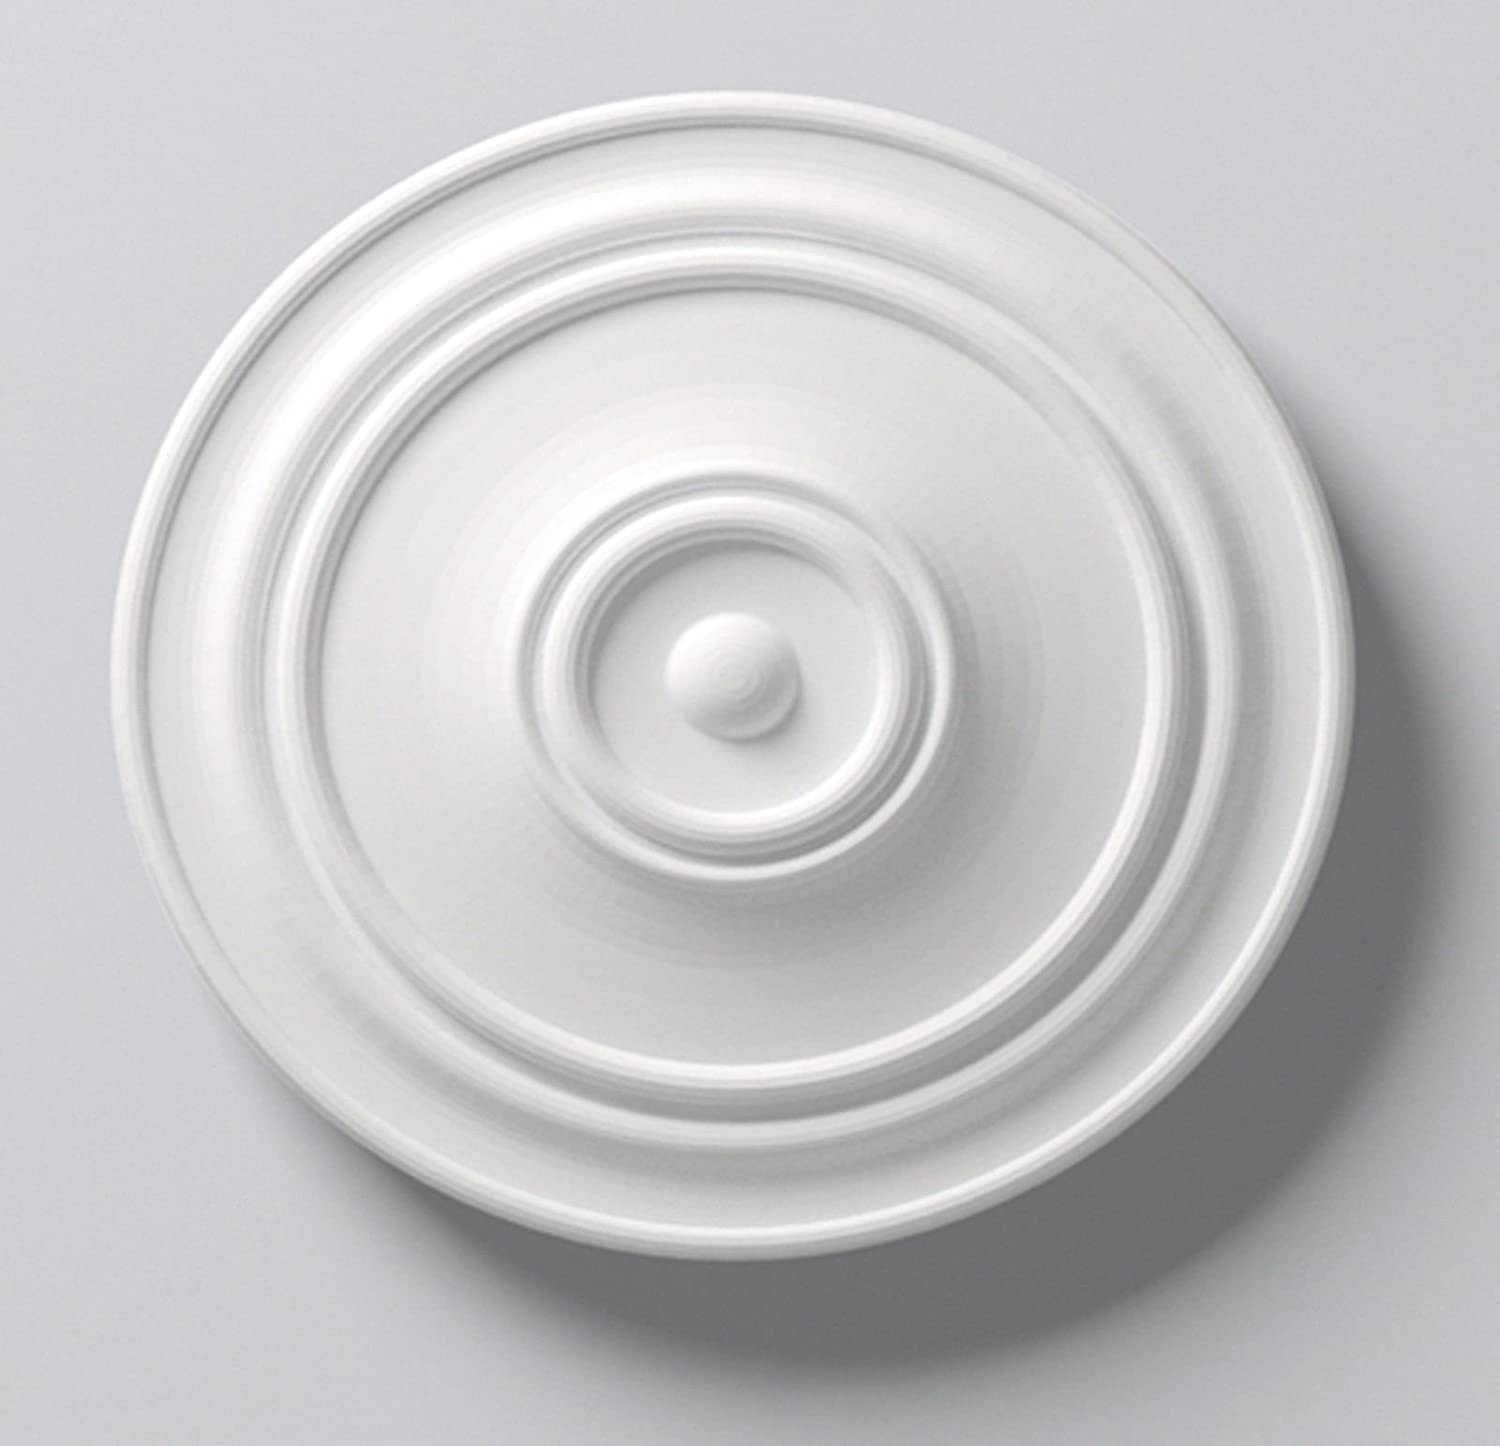 Ceiling Rose Julia Lightweight Resin Mould Not Polystyrene Easy to Fix 56cm Copleys